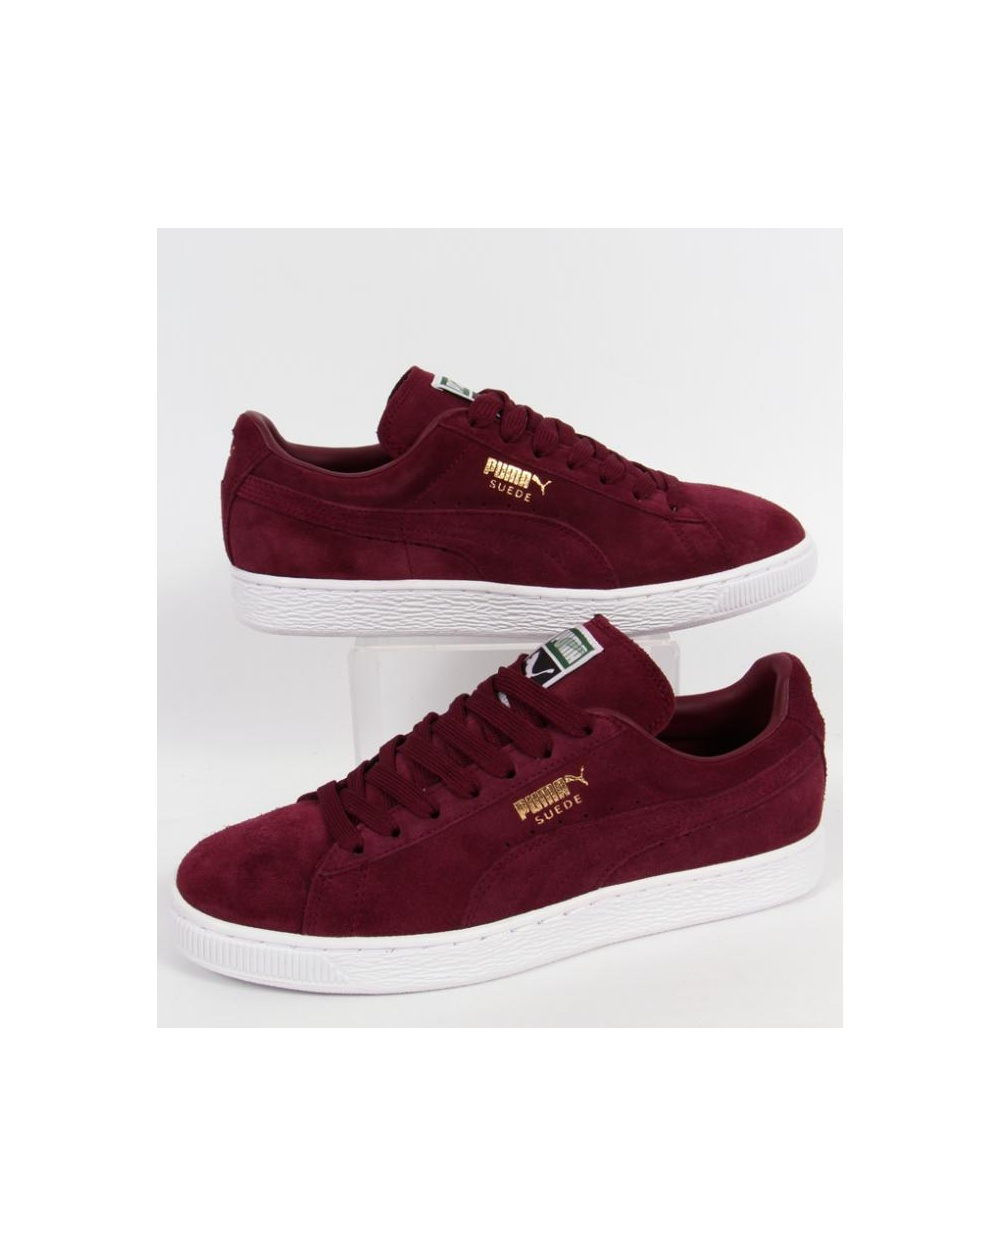 puma suede classic trainers burgundy burgundy puma suede. Black Bedroom Furniture Sets. Home Design Ideas